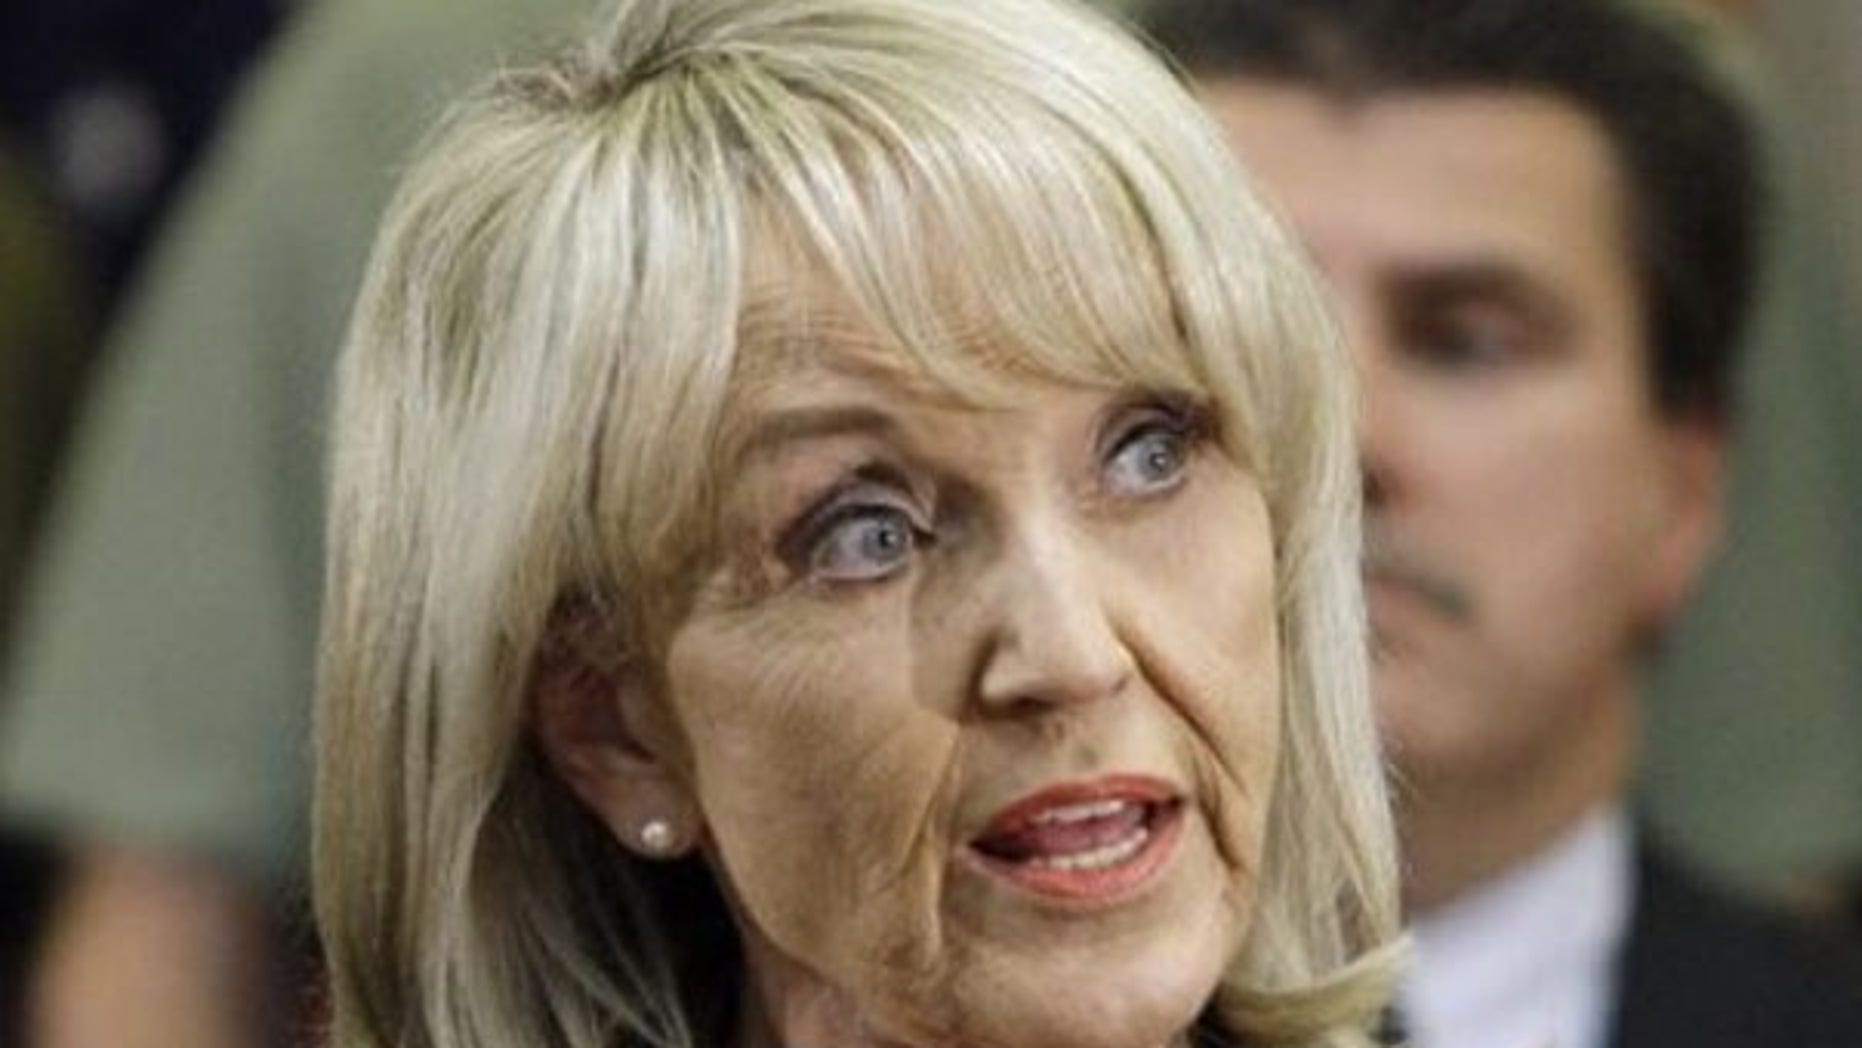 Arizona Gov. Jan Brewer speaks during a news conference after signing her state's immigration bill April 23 in Phoenix. (AP Photo)